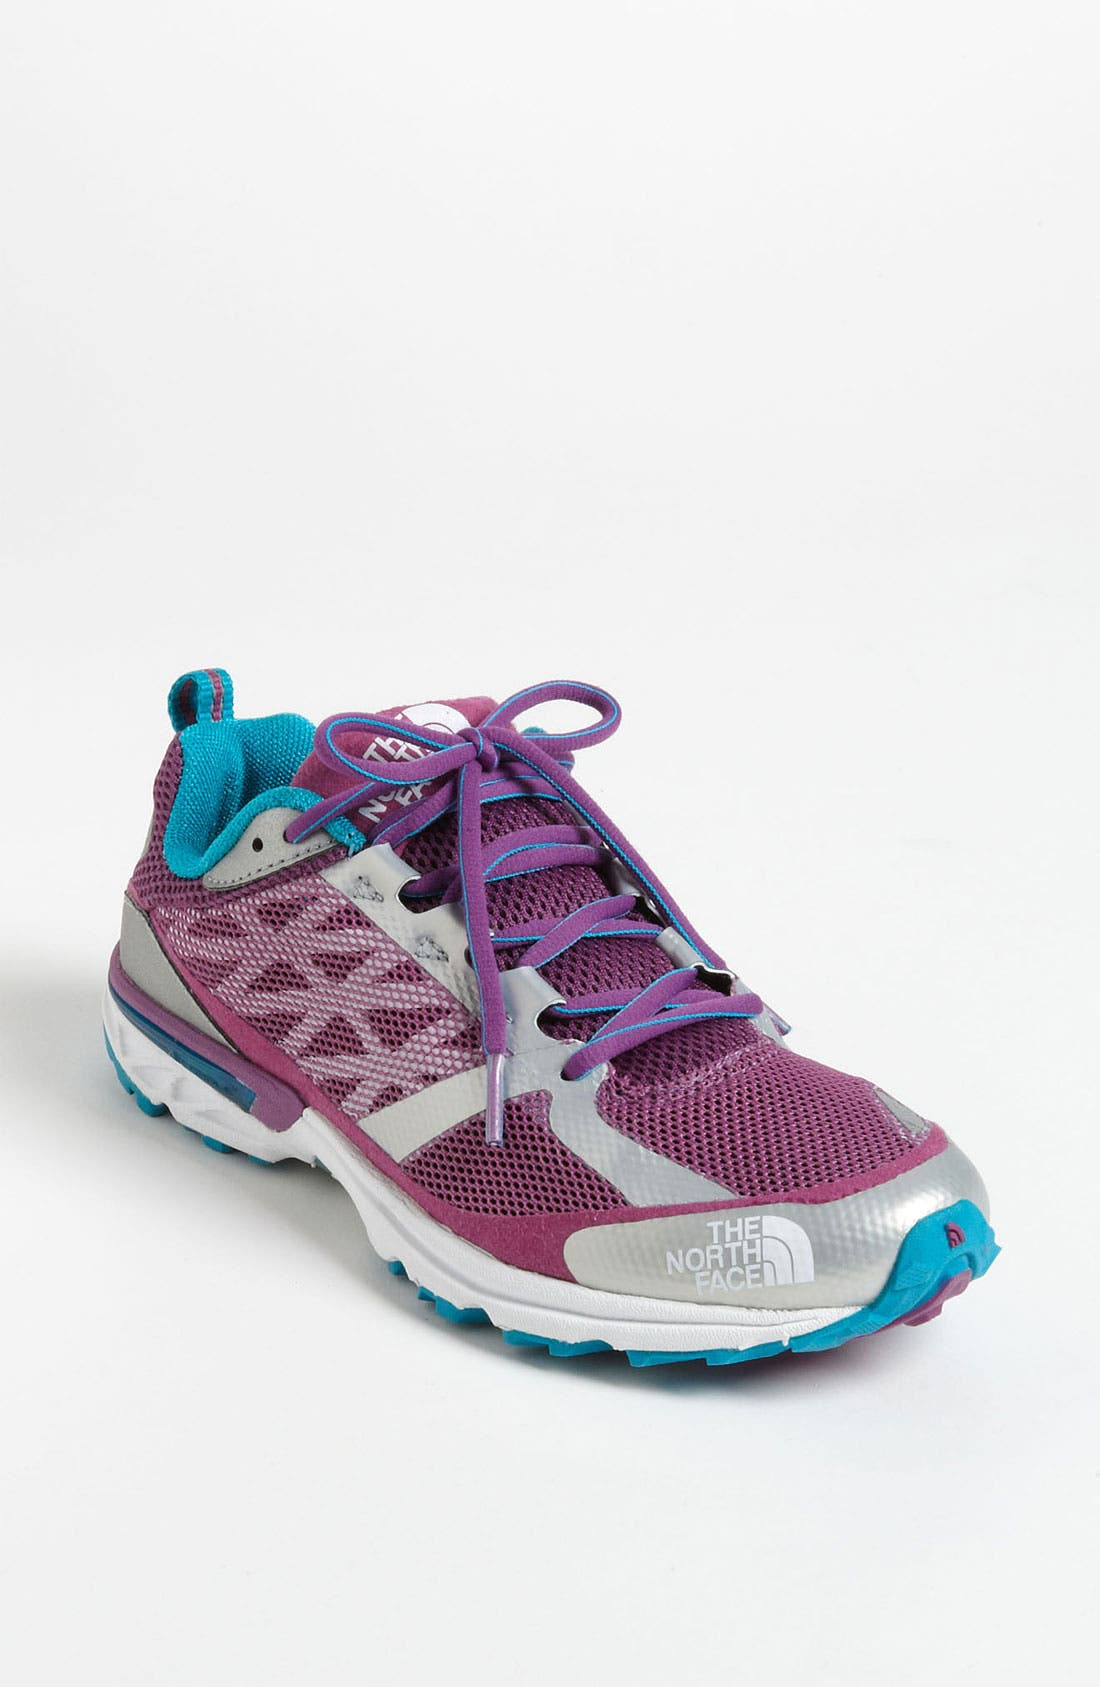 Alternate Image 1 Selected - The North Face 'Single-Track Hayasa' Trail Running Shoe (Women)